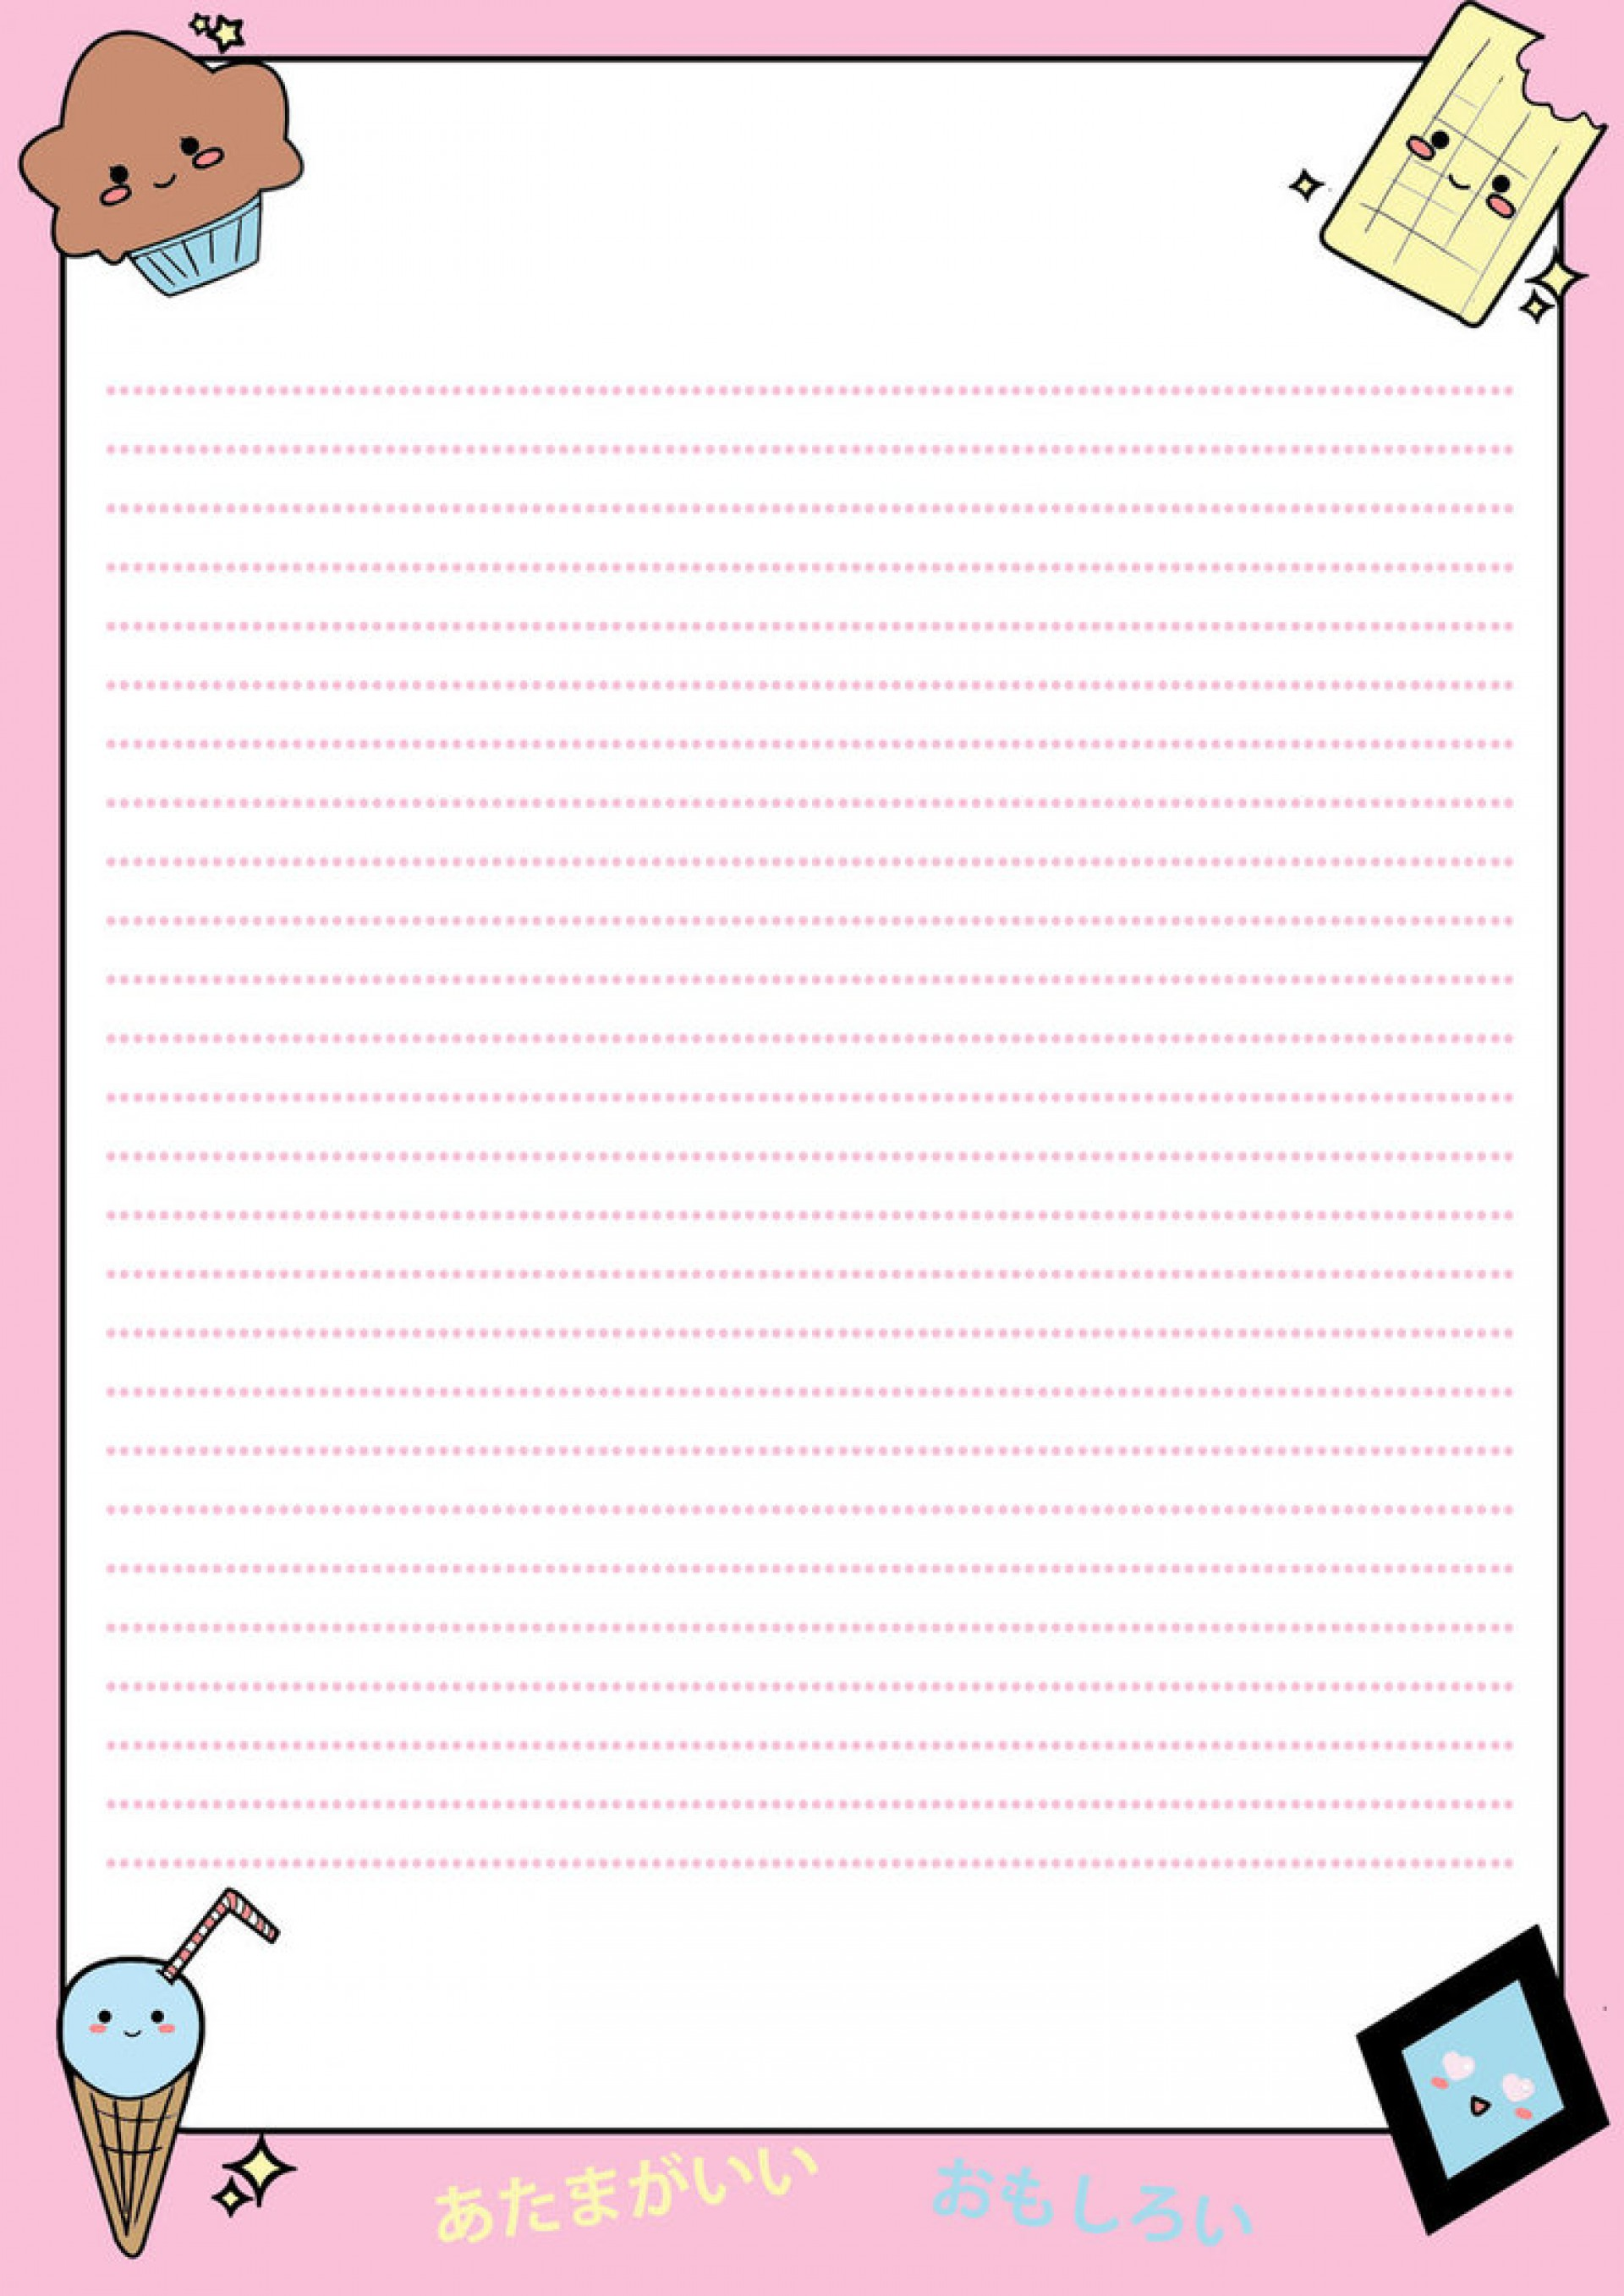 003 Custom Essay Order Example Writing Paper Letter Of Write My Cute 1 By Muddy Mudkip Frightening 1920